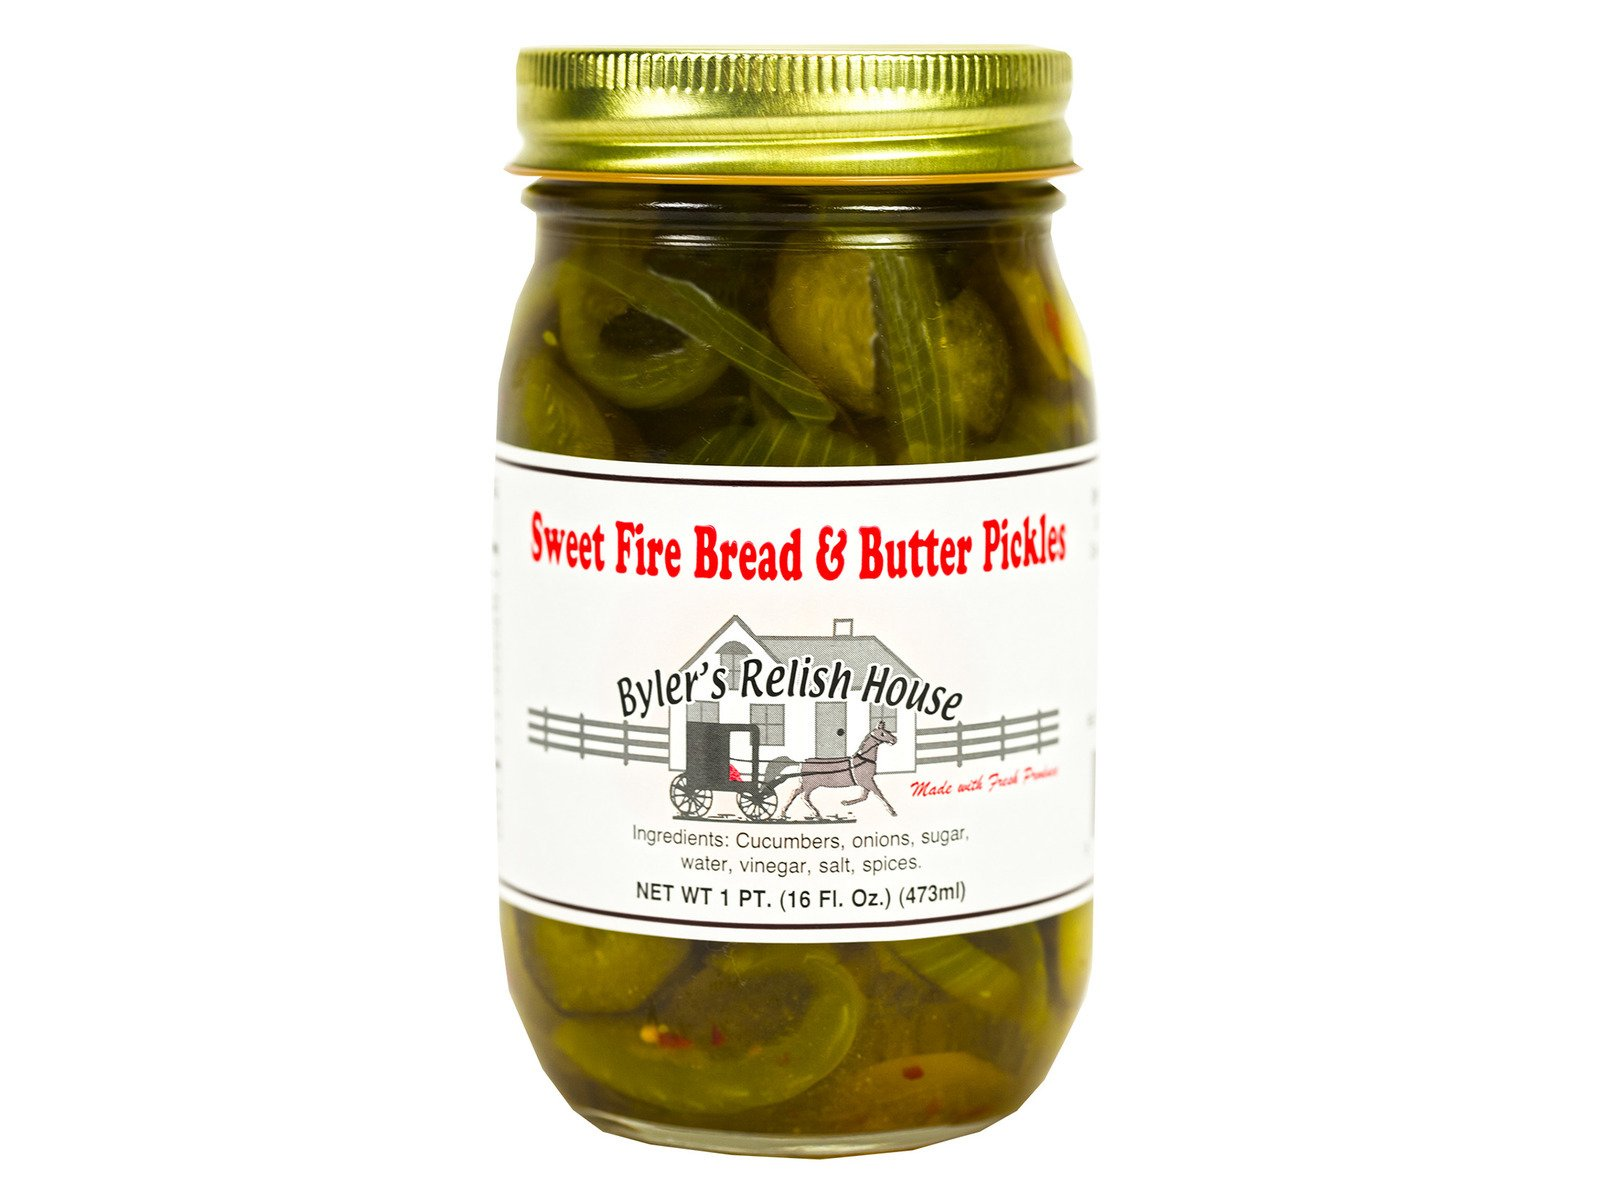 Byler's Sweet Fire Bread & Butter Pickles - (Two Pack) by Byler's Relish House